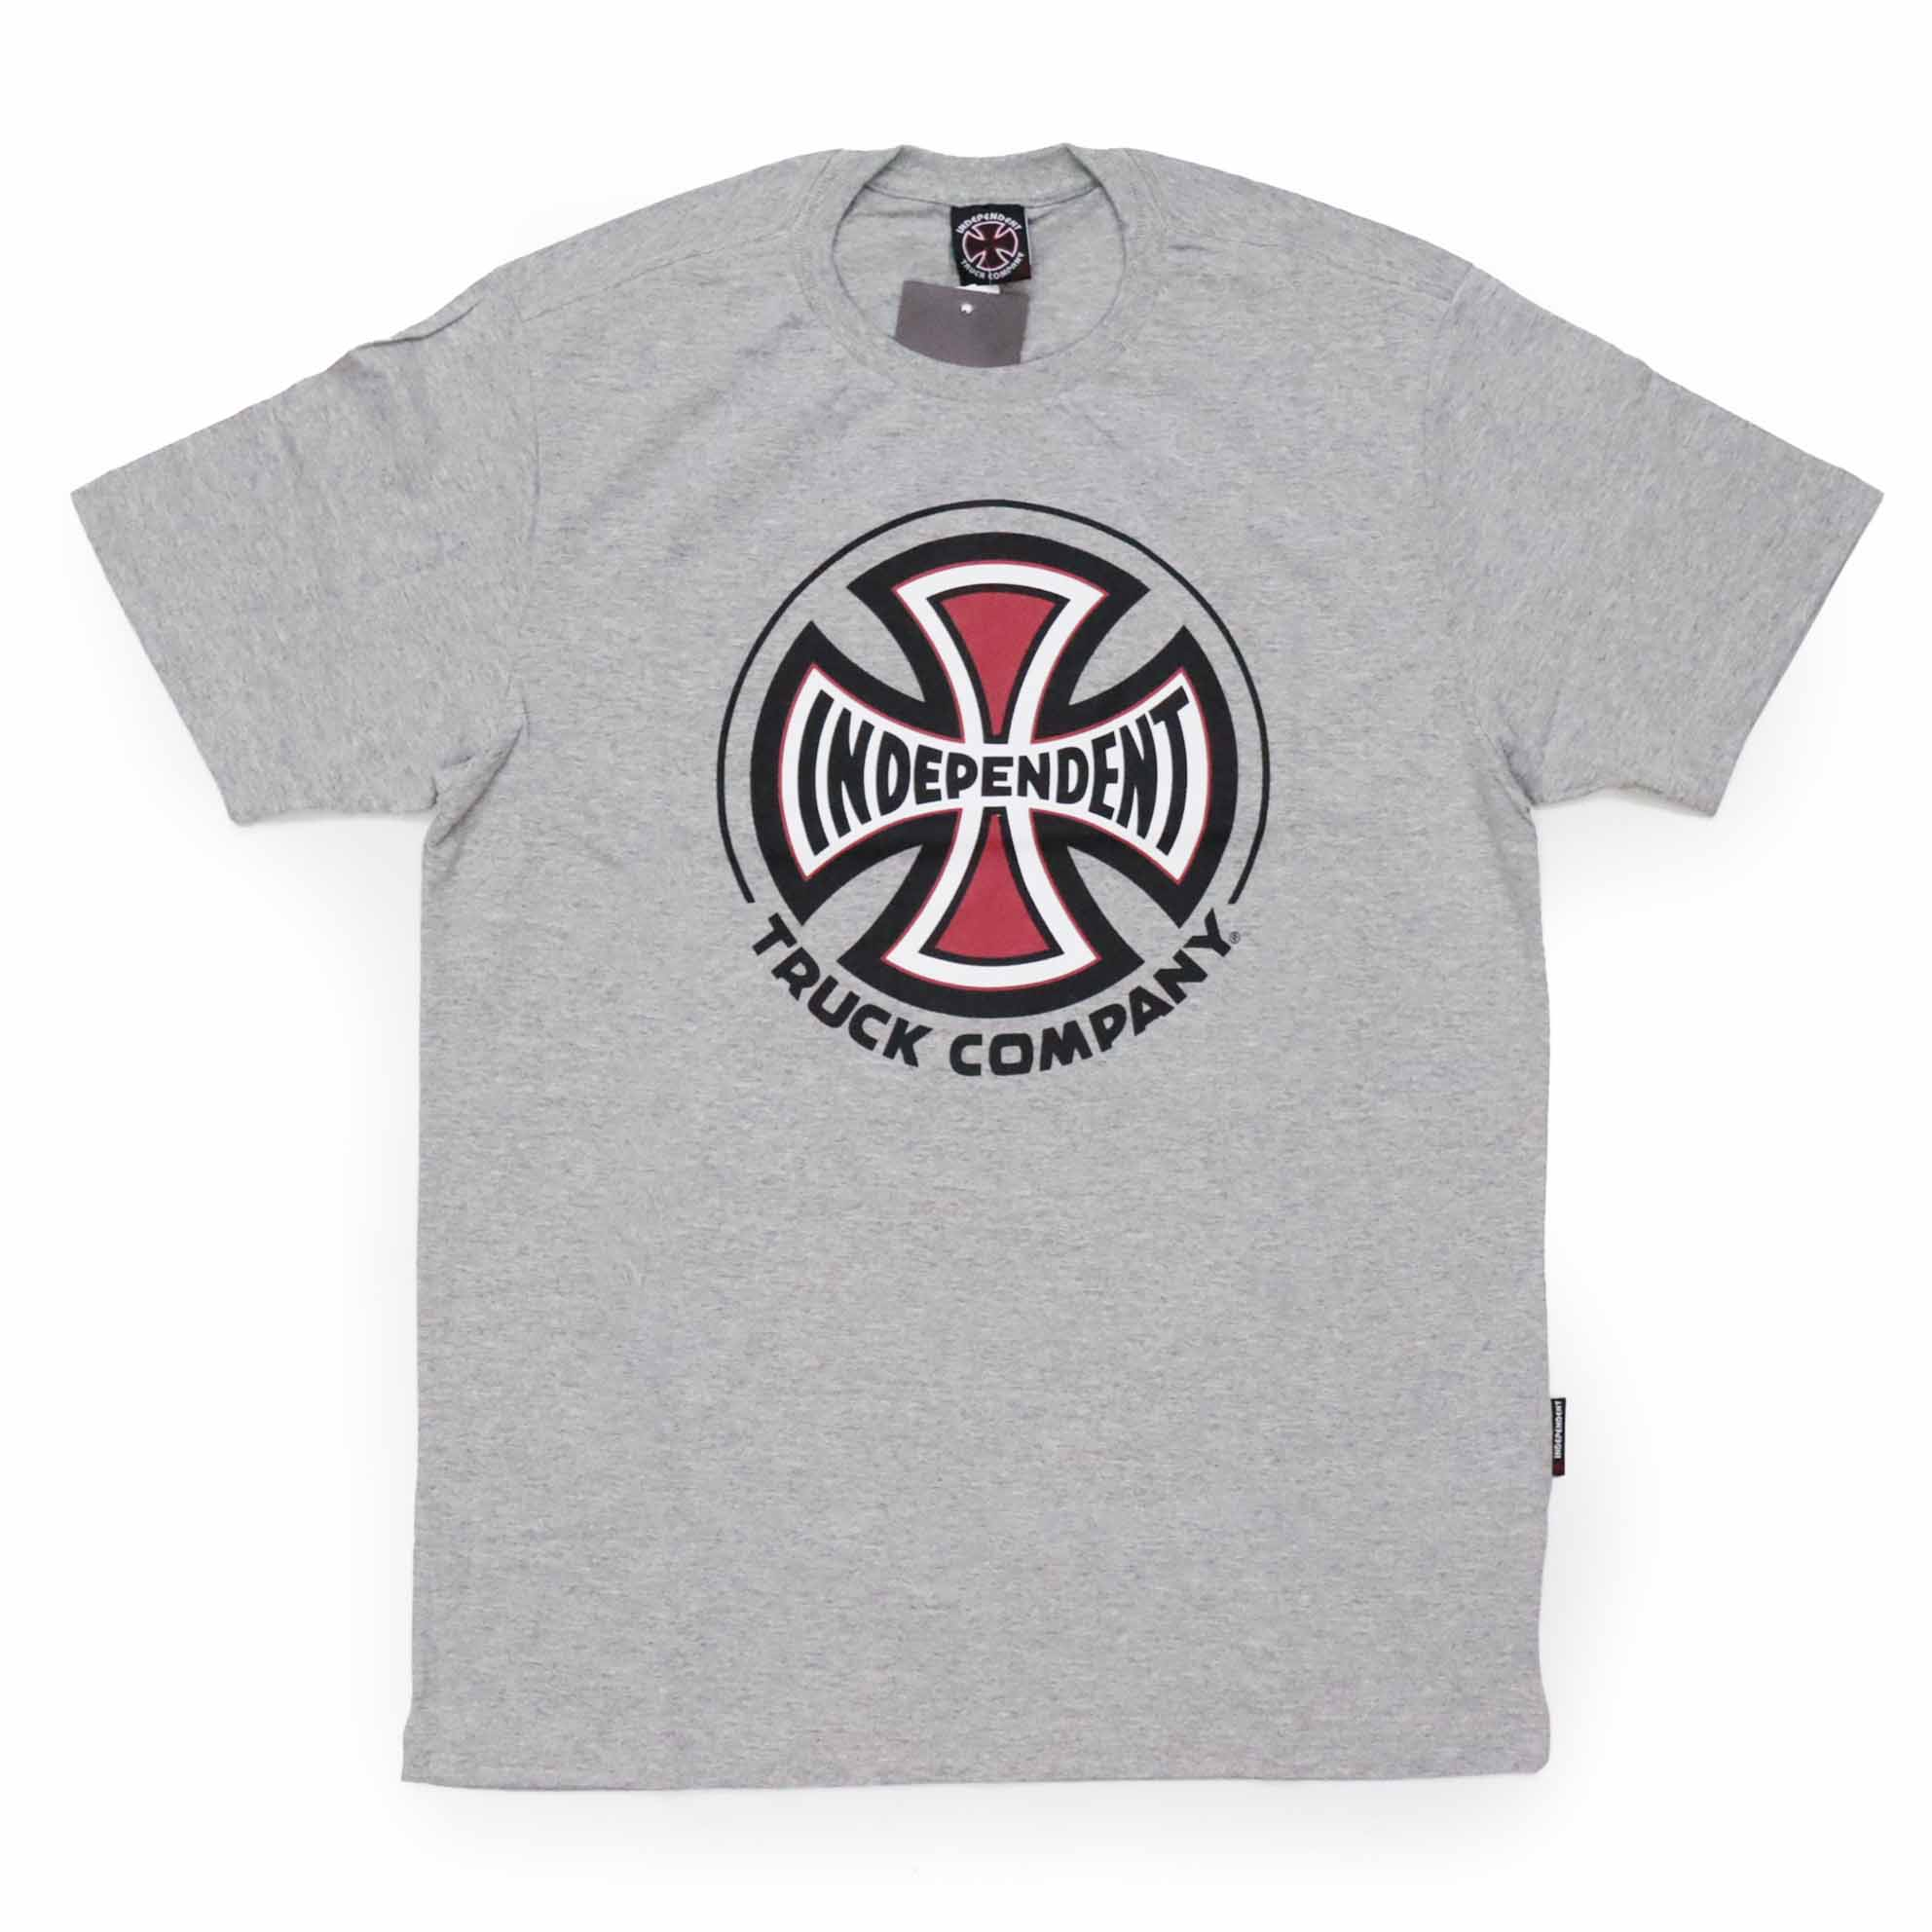 Camiseta Independent Truck Co 3 Colors - Cinza Mescla